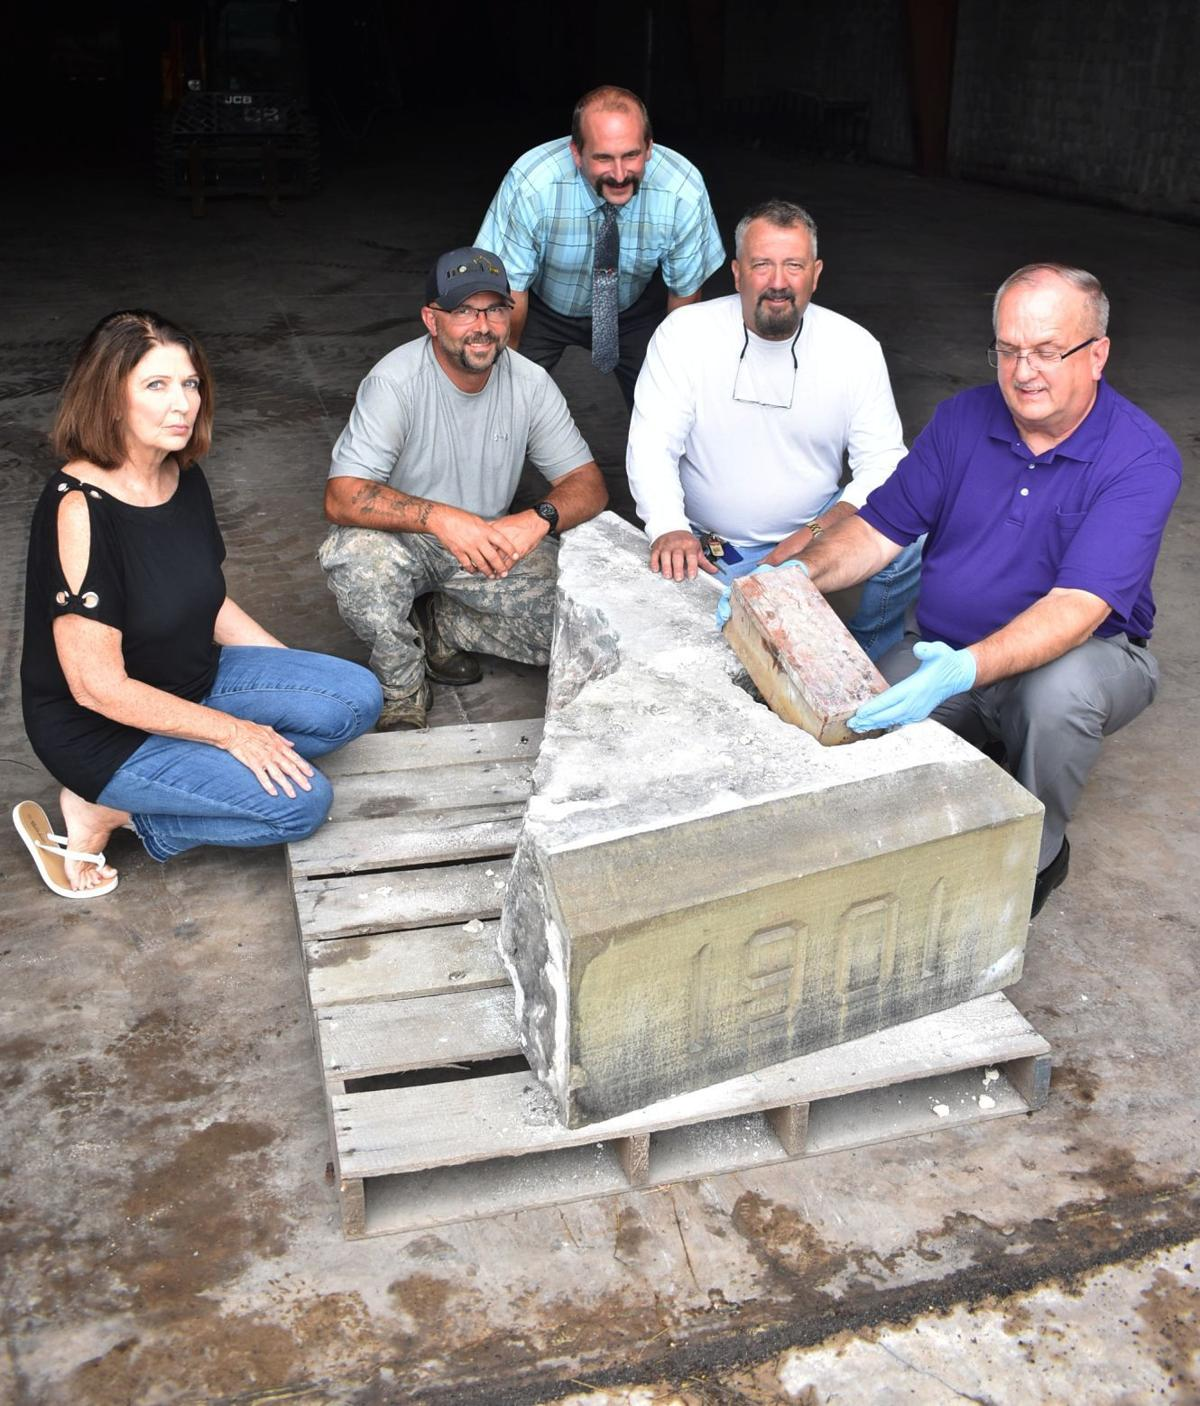 TIME CAPSULE CONTENTS REVEALED